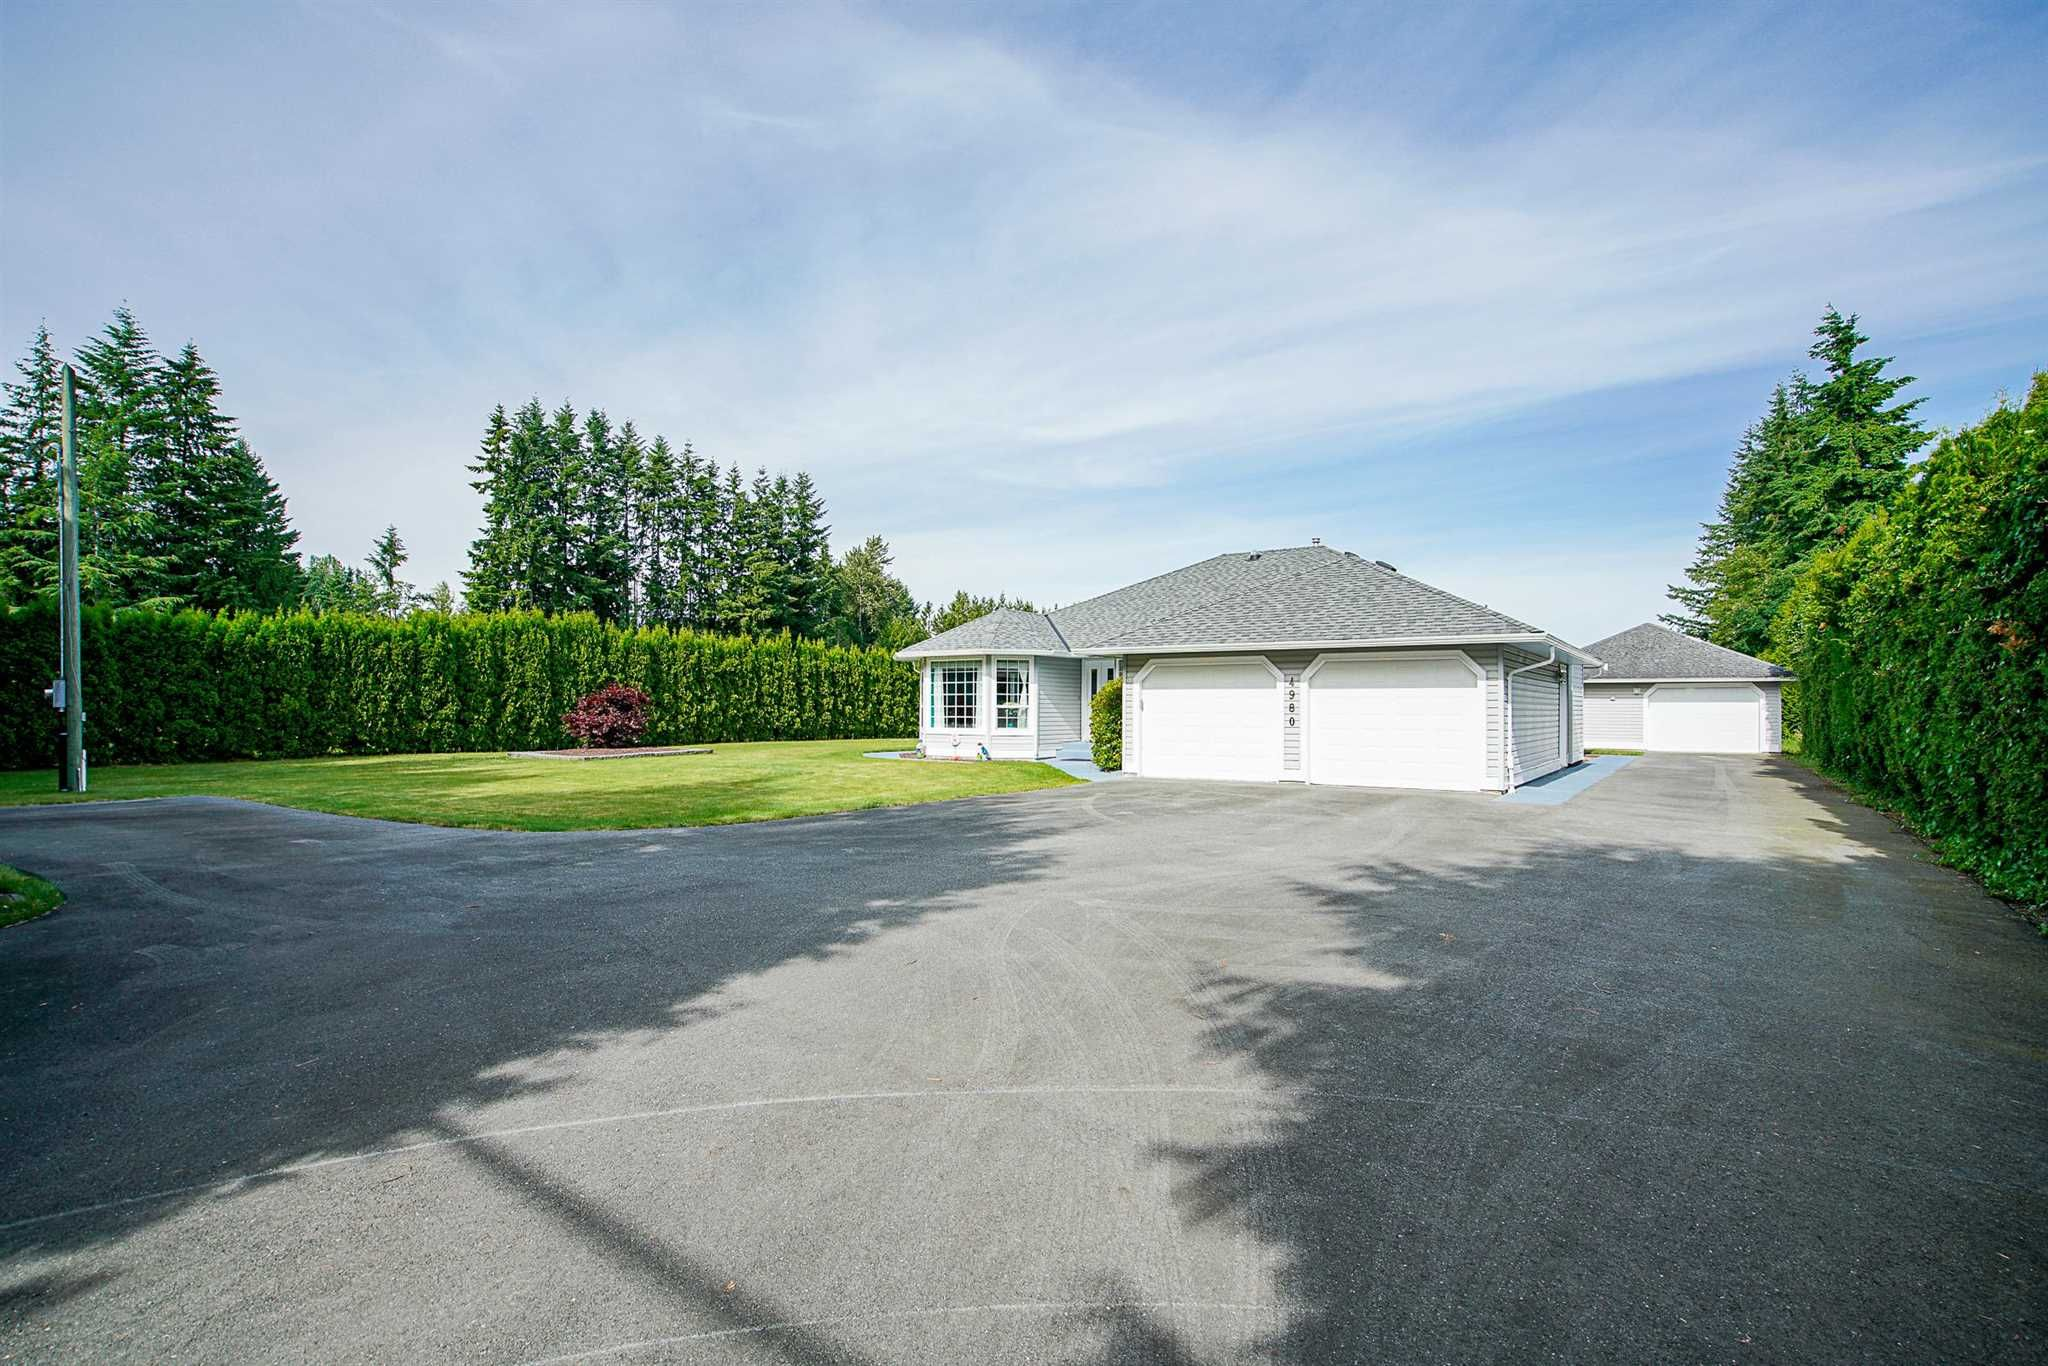 """Main Photo: 4980 236 Street in Langley: Salmon River House for sale in """"Strawberry Hills"""" : MLS®# R2594164"""